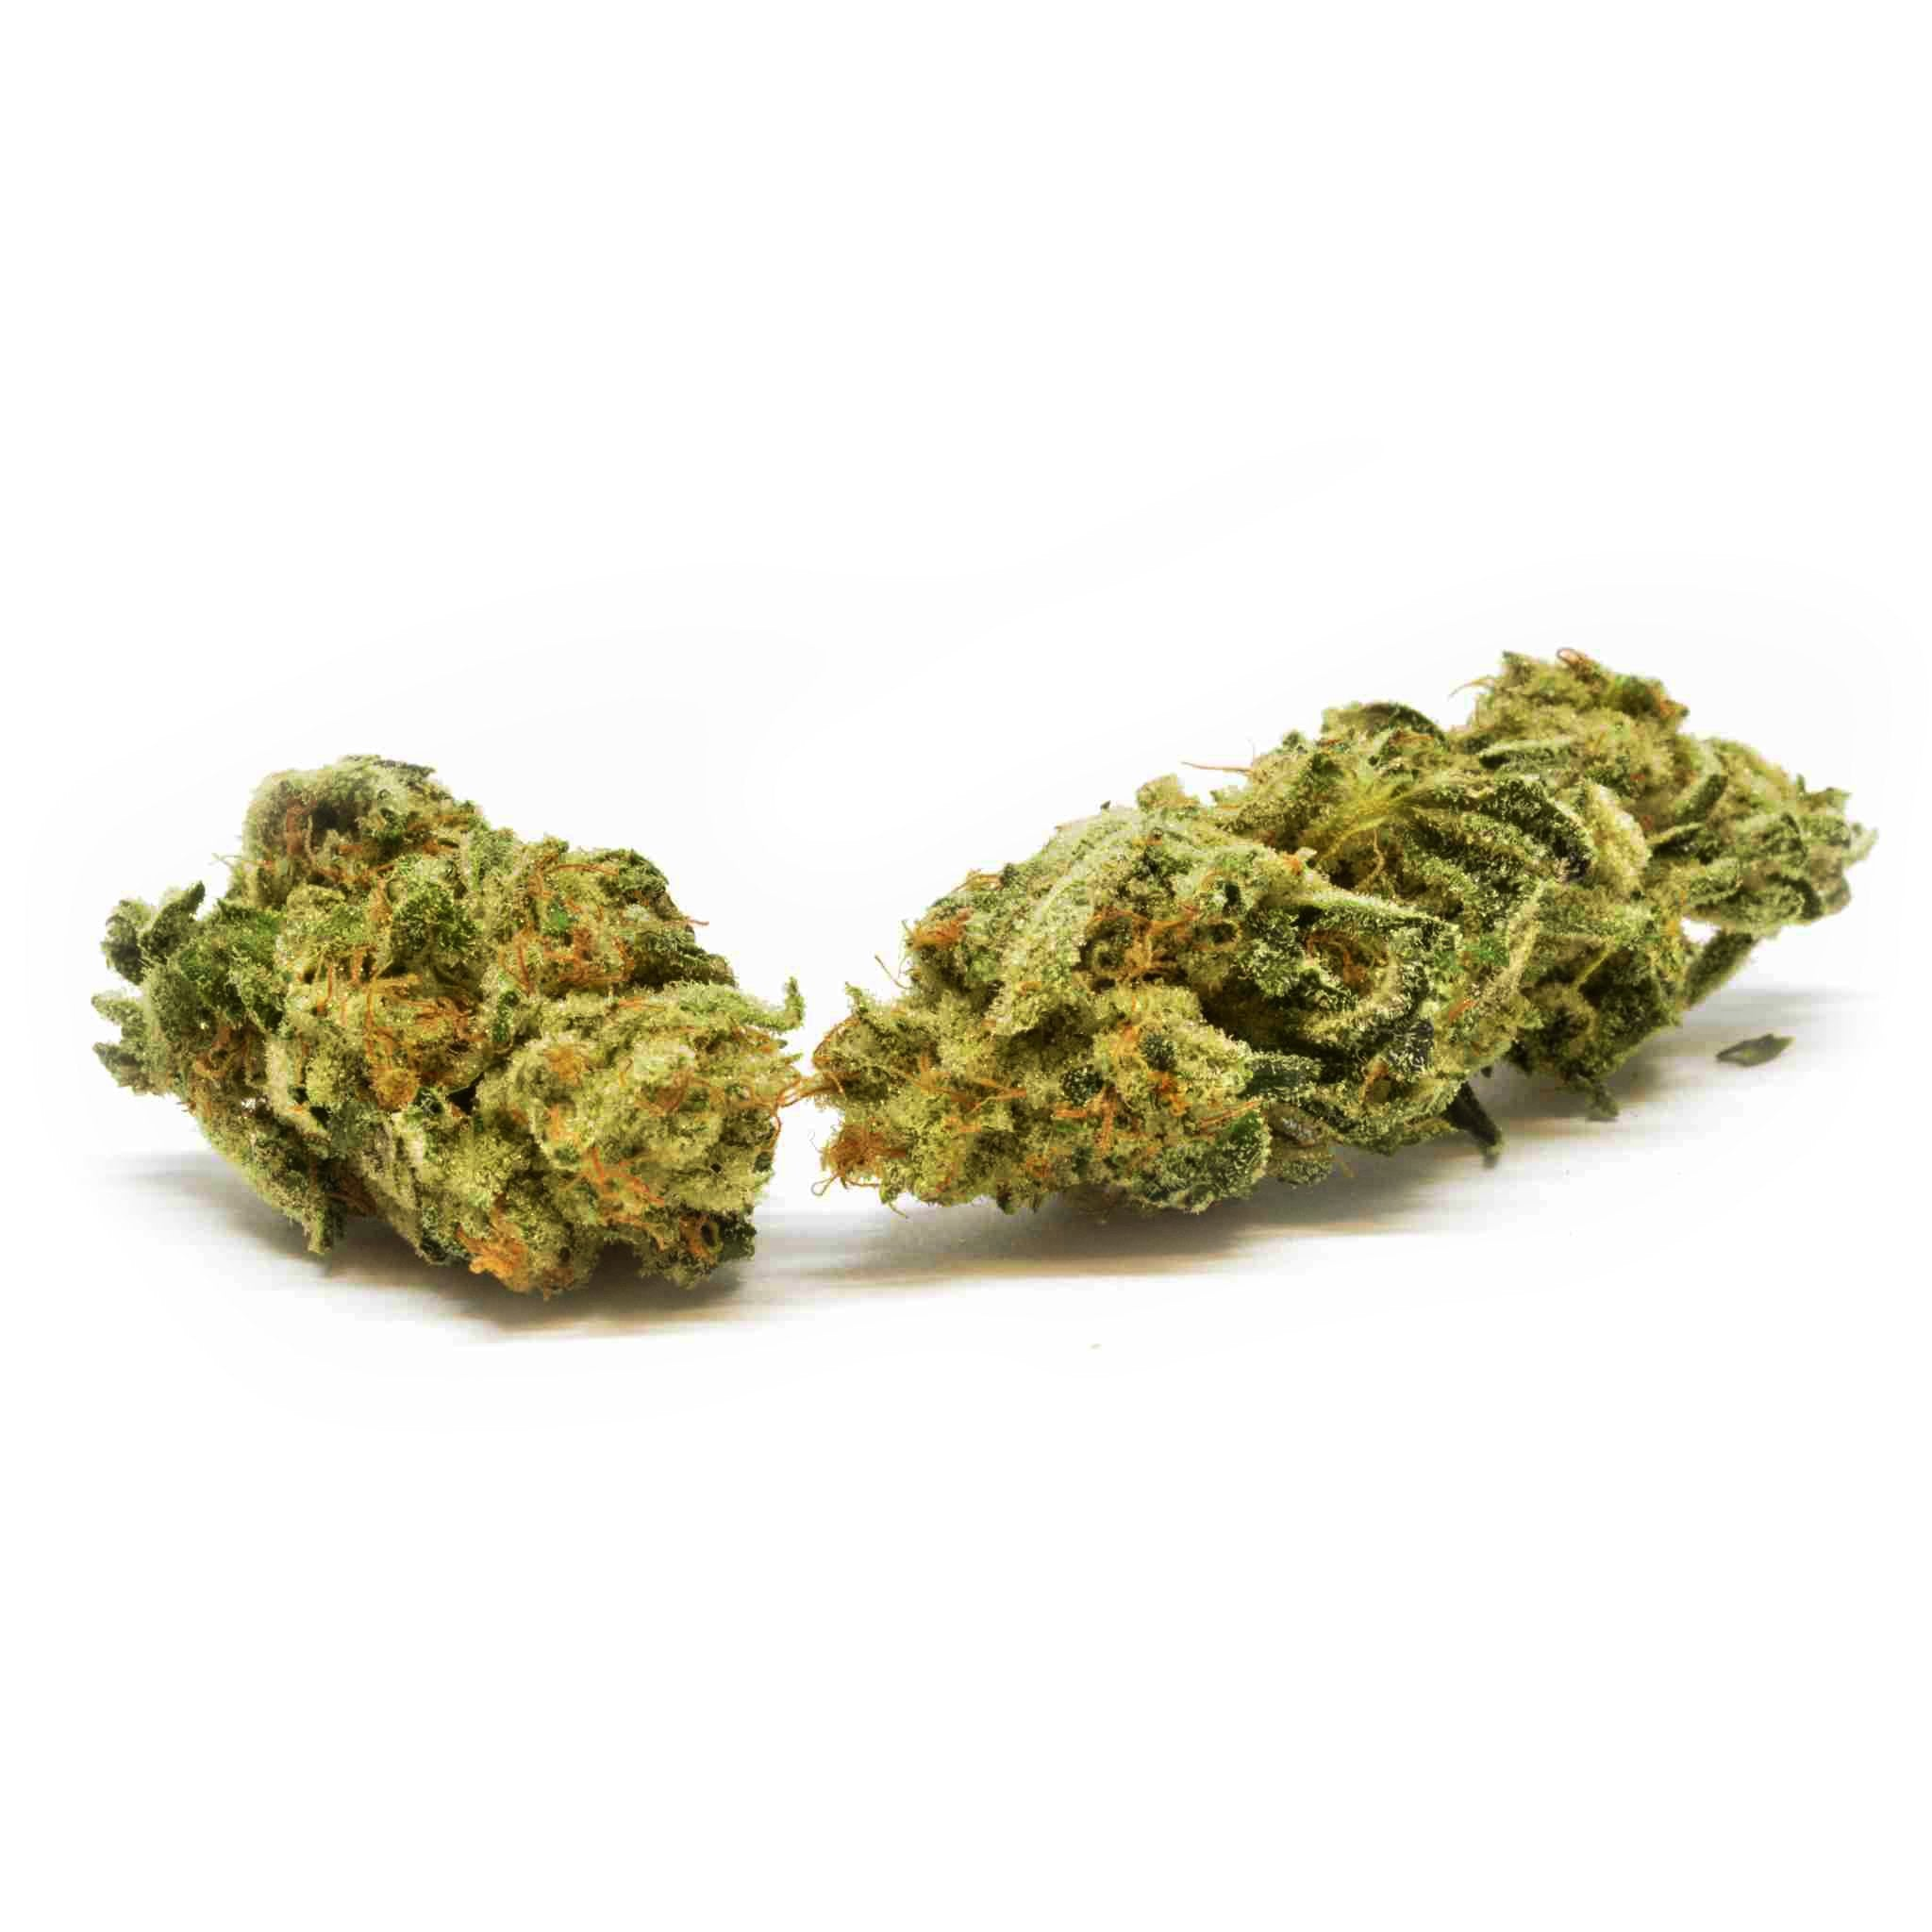 Swiss Botanic - Critical Sensi Star - CBD Cannabis - Buy online in uWeed shop - Switzerland